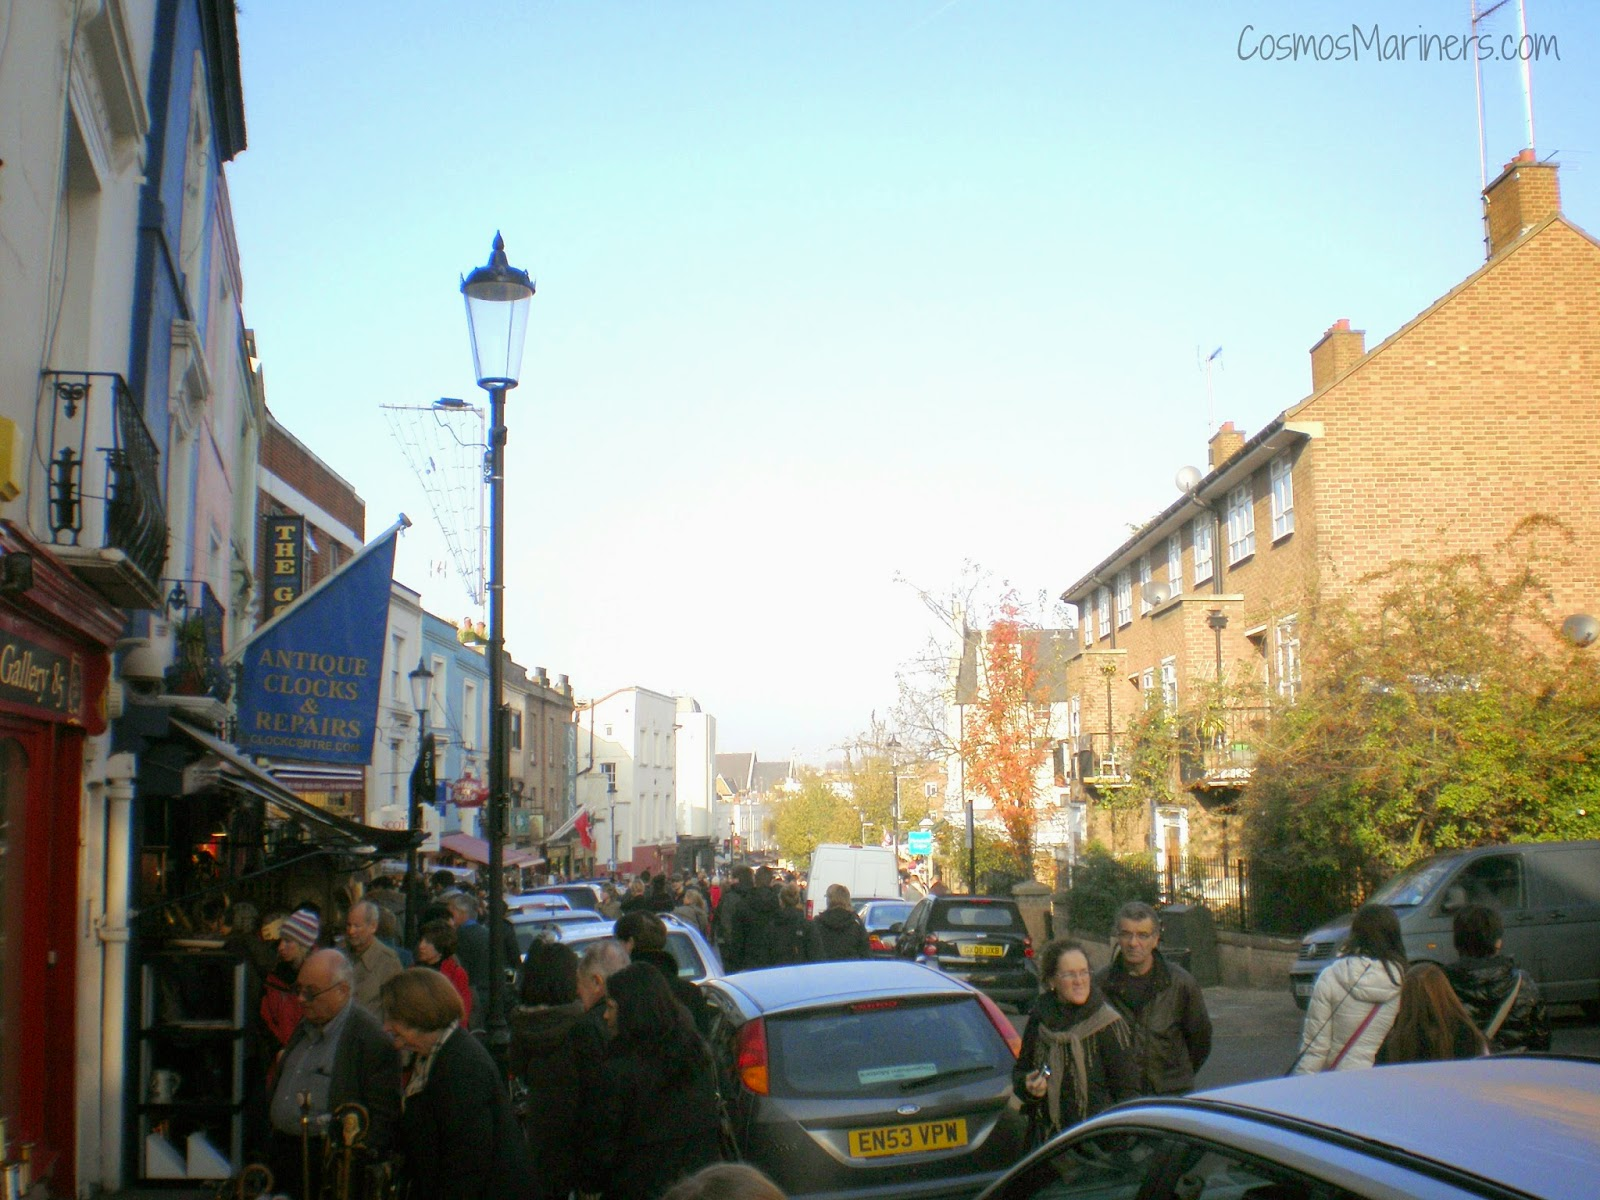 Portobello Road Market and West End Theatre | CosmosMariners.com